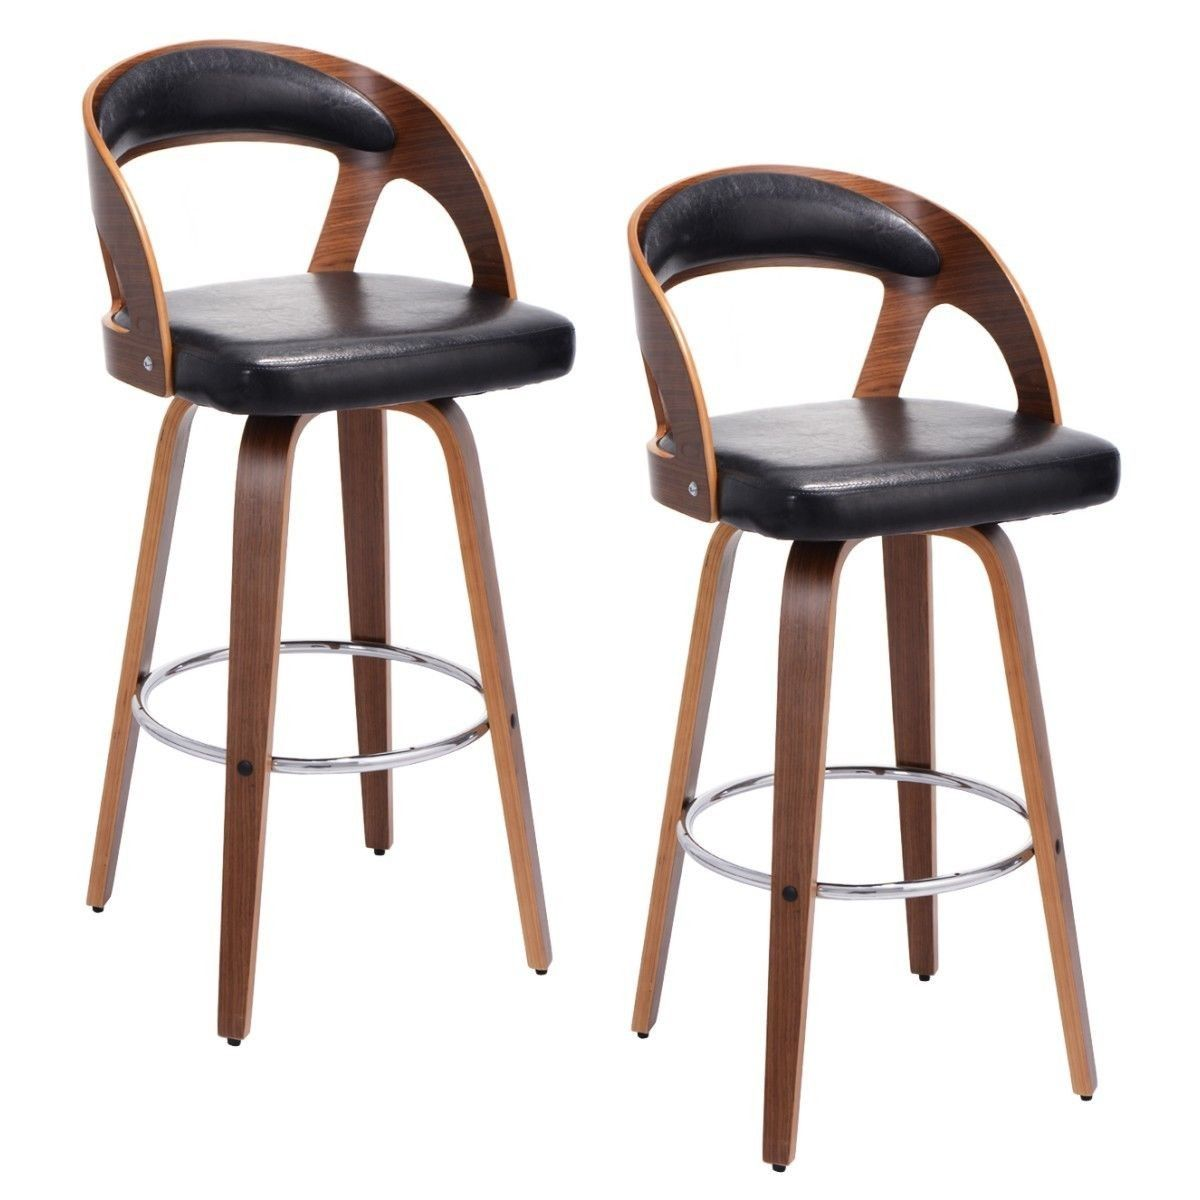 Set Of 2 Bentwood Bar Stools PU Leather Modern Barstool Bistro Pub Chair Set